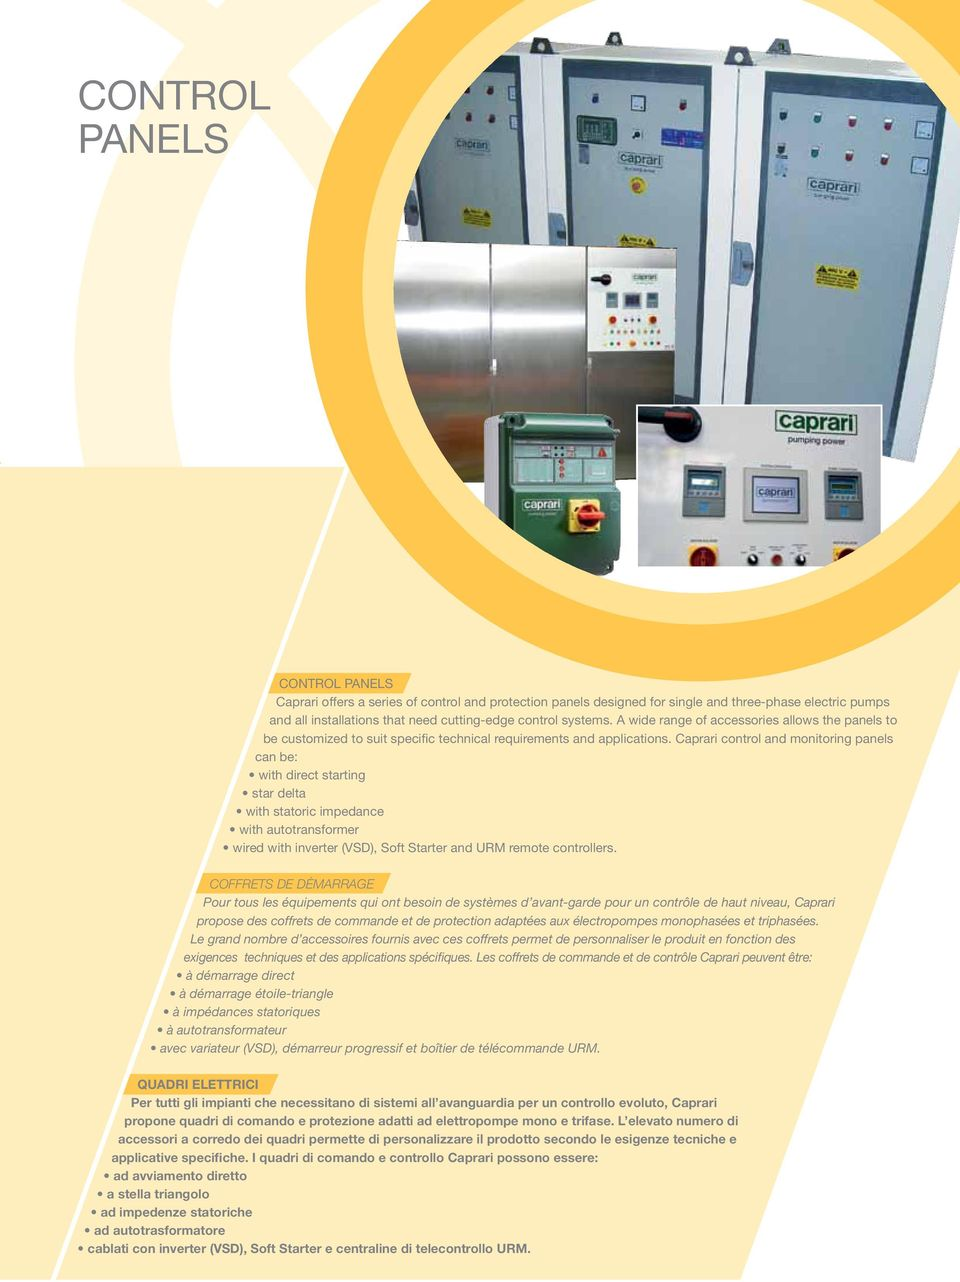 Caprari control and monitoring panels can be: with direct starting star delta with statoric impedance with autotransformer wired with inverter (VSD), Soft Starter and URM remote controllers.